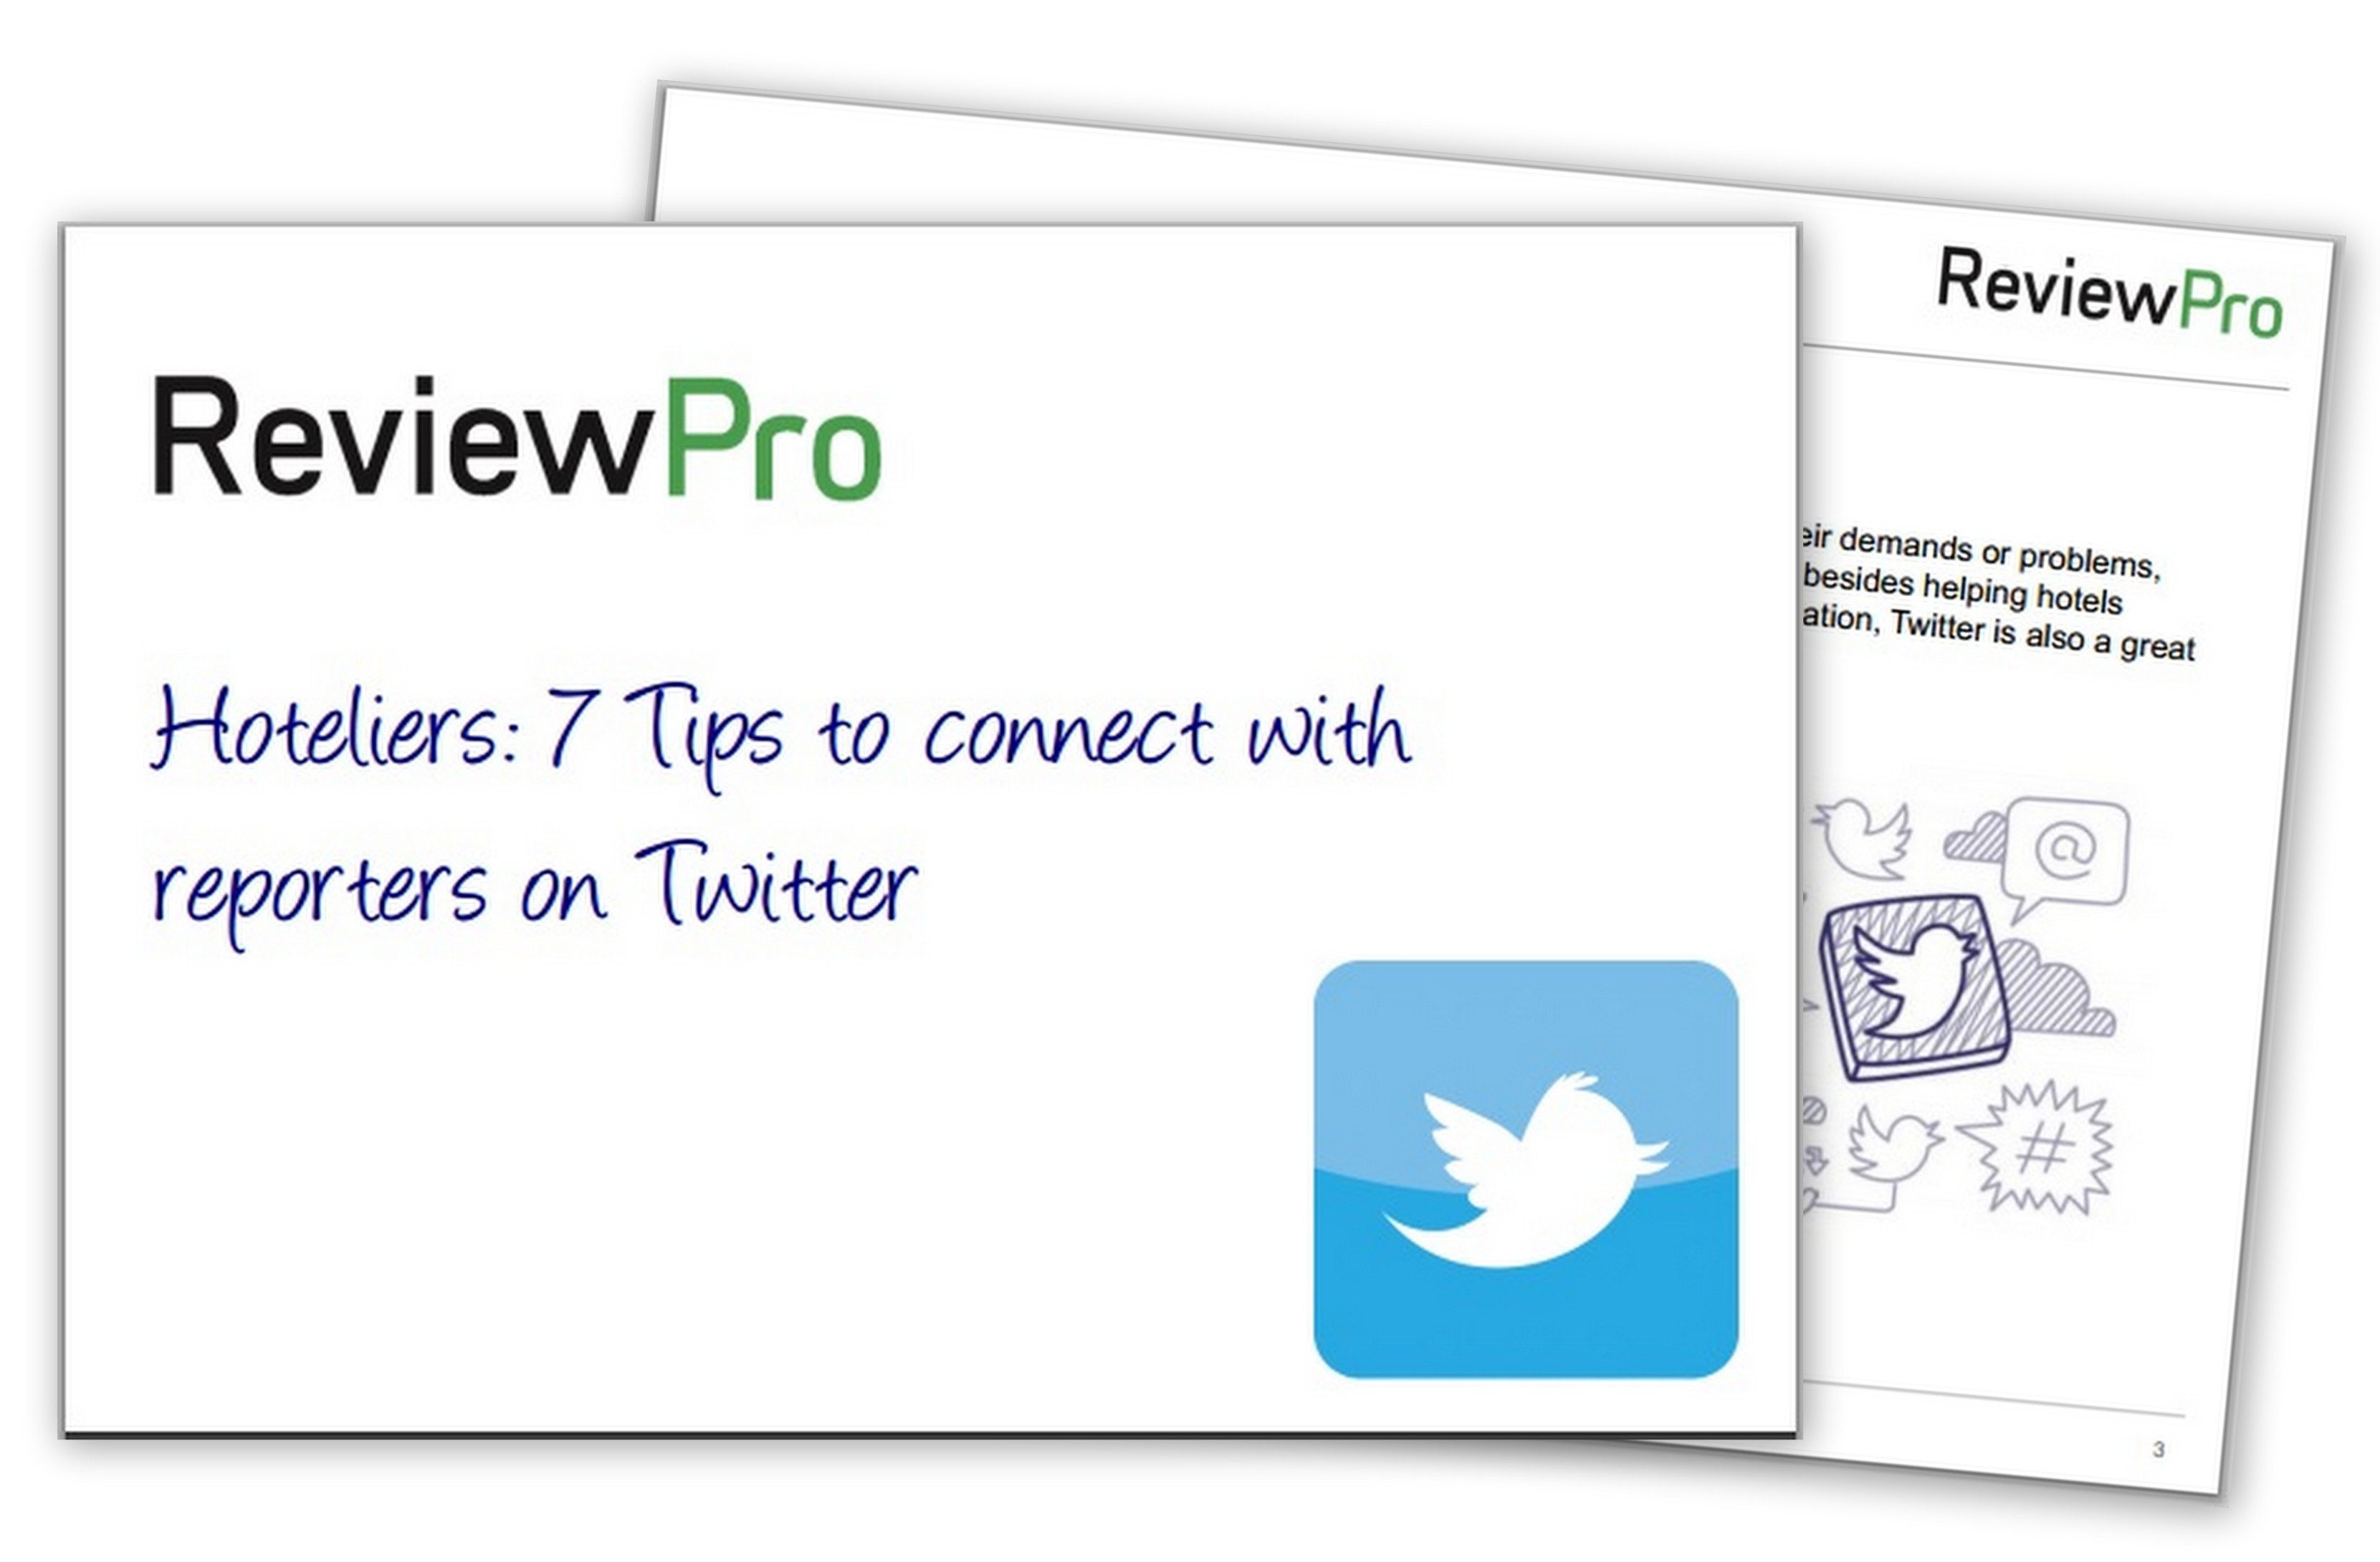 Download: 7 Tips to connect with reporters on Twitter